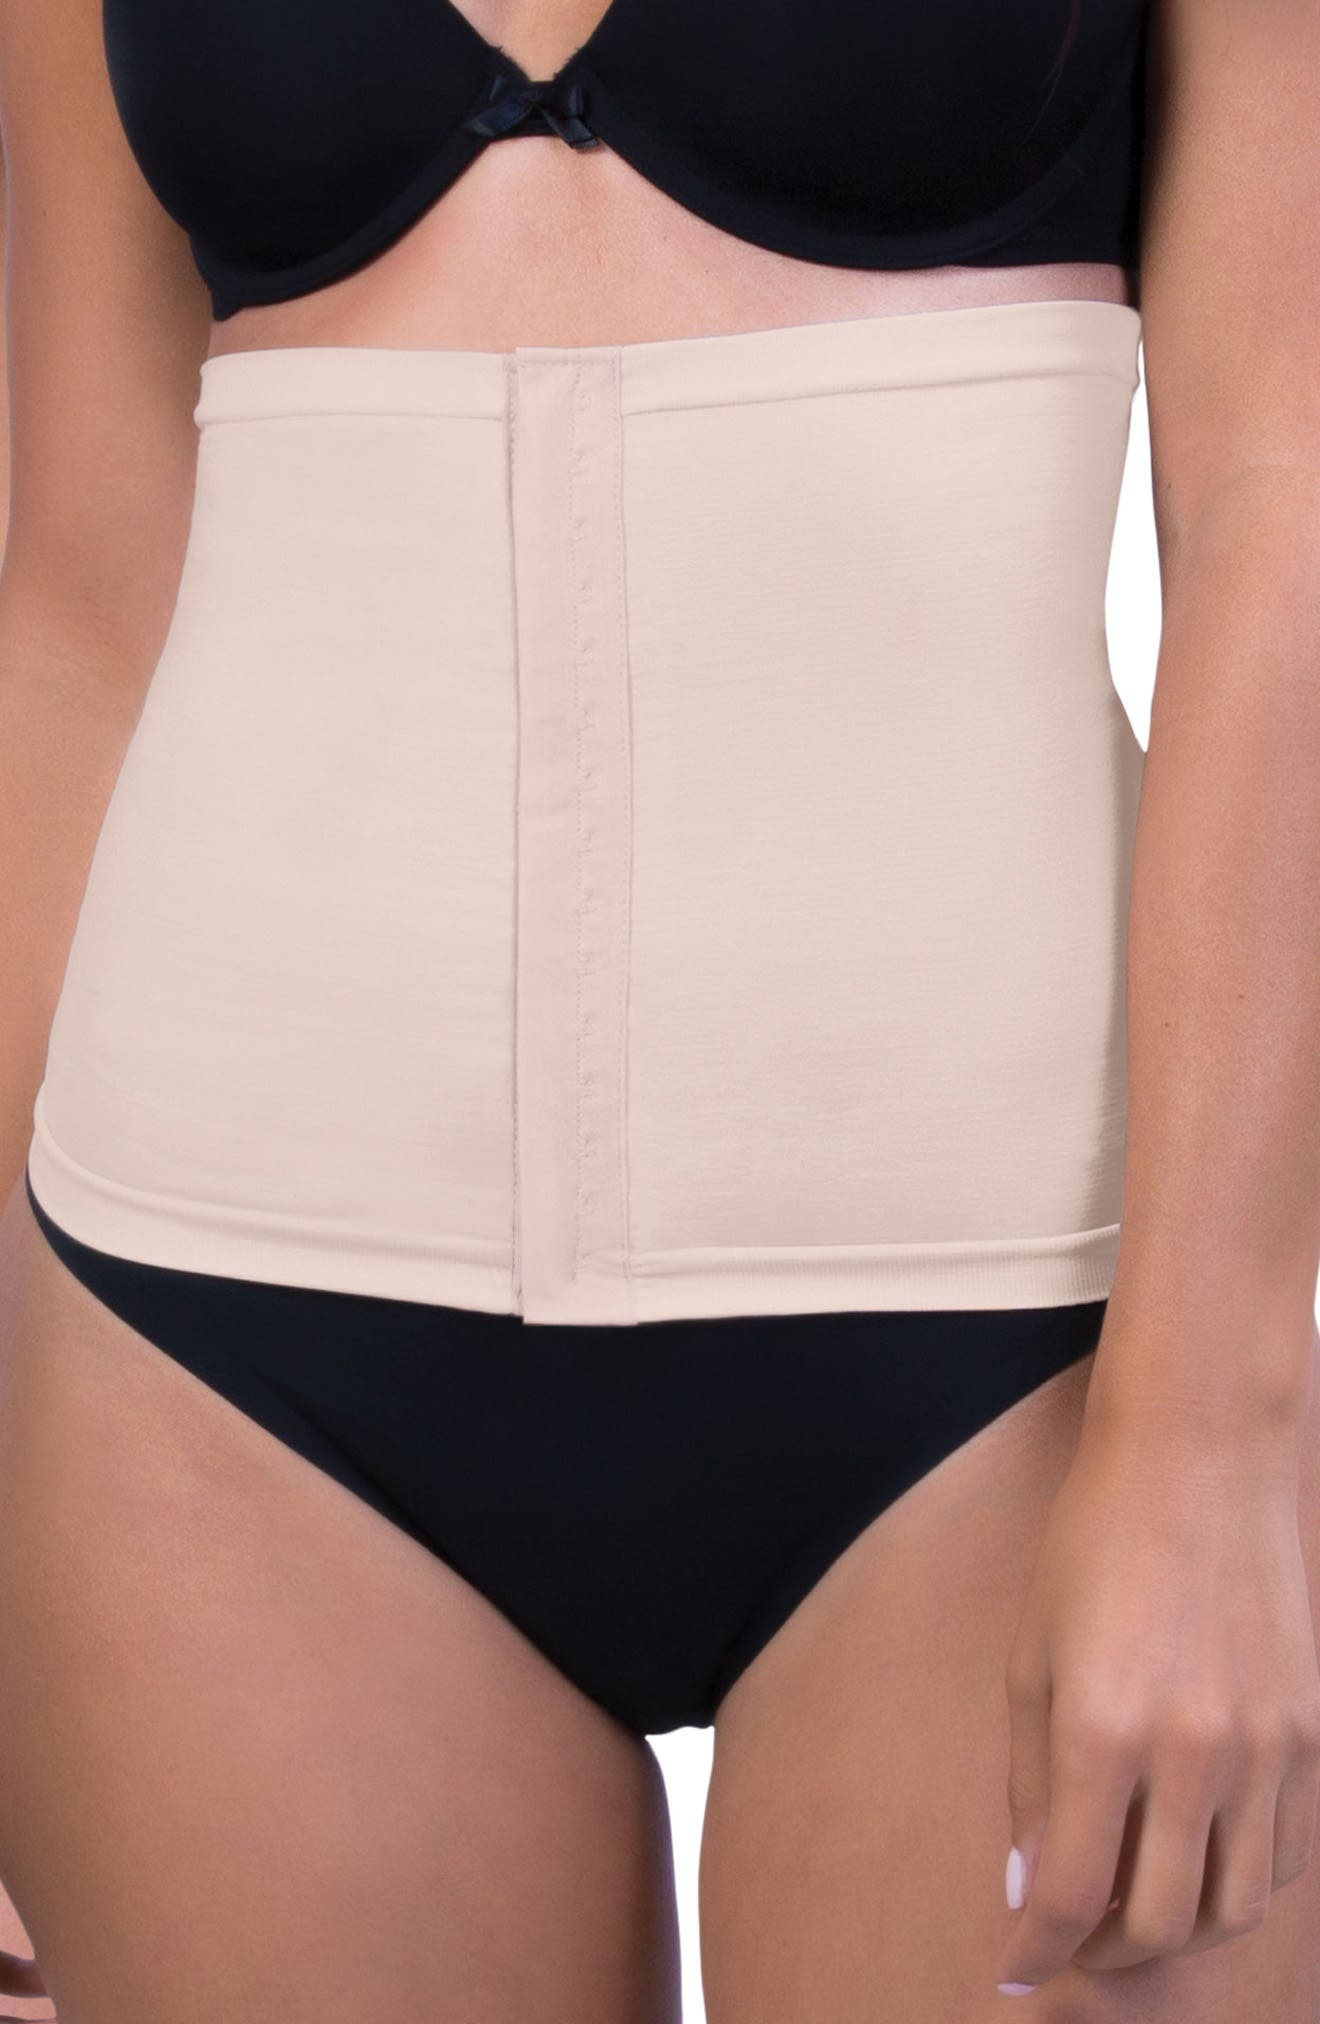 Women's Belly Bandit Post Pregnancy Protective Belly Shield